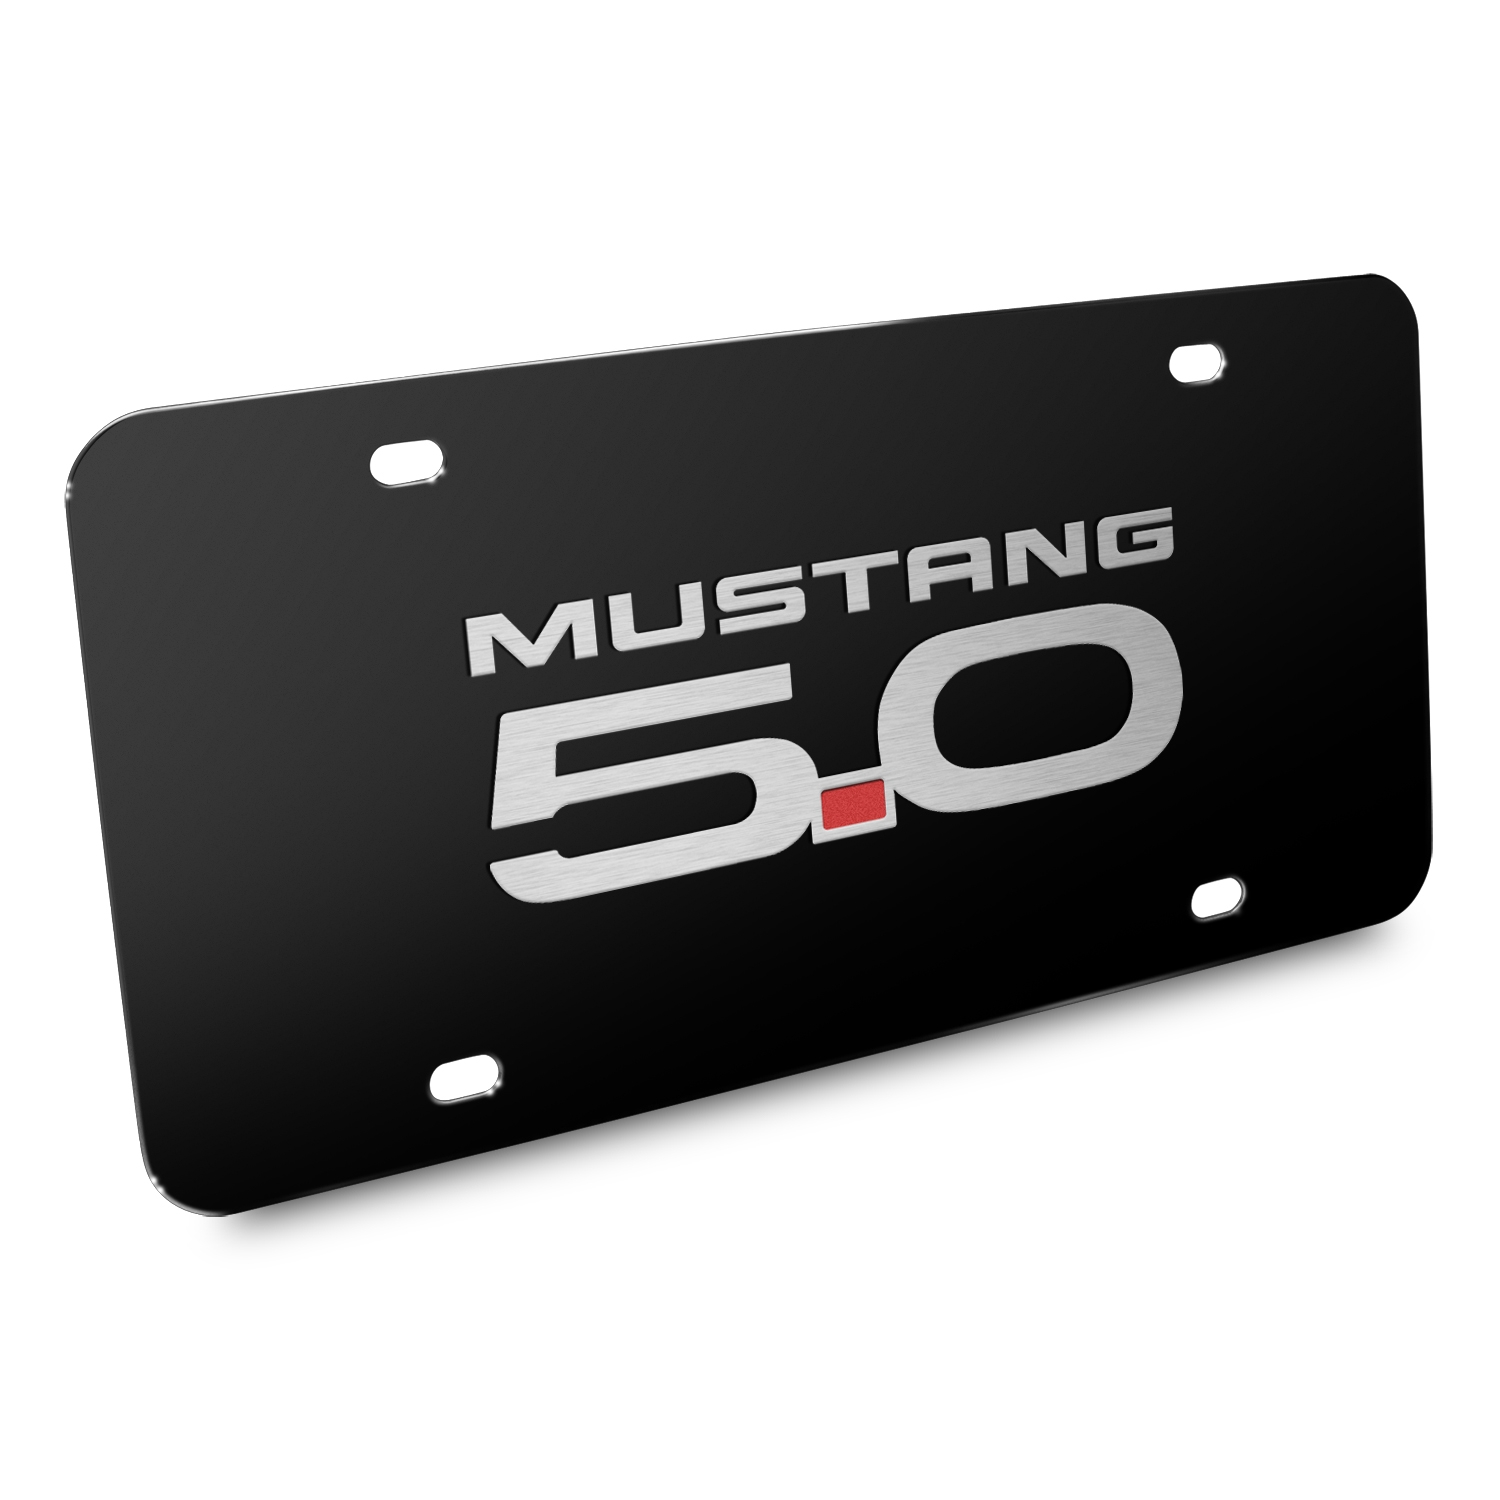 Ford Mustang GT 5.0 3D Black Stainless Steel License Plate